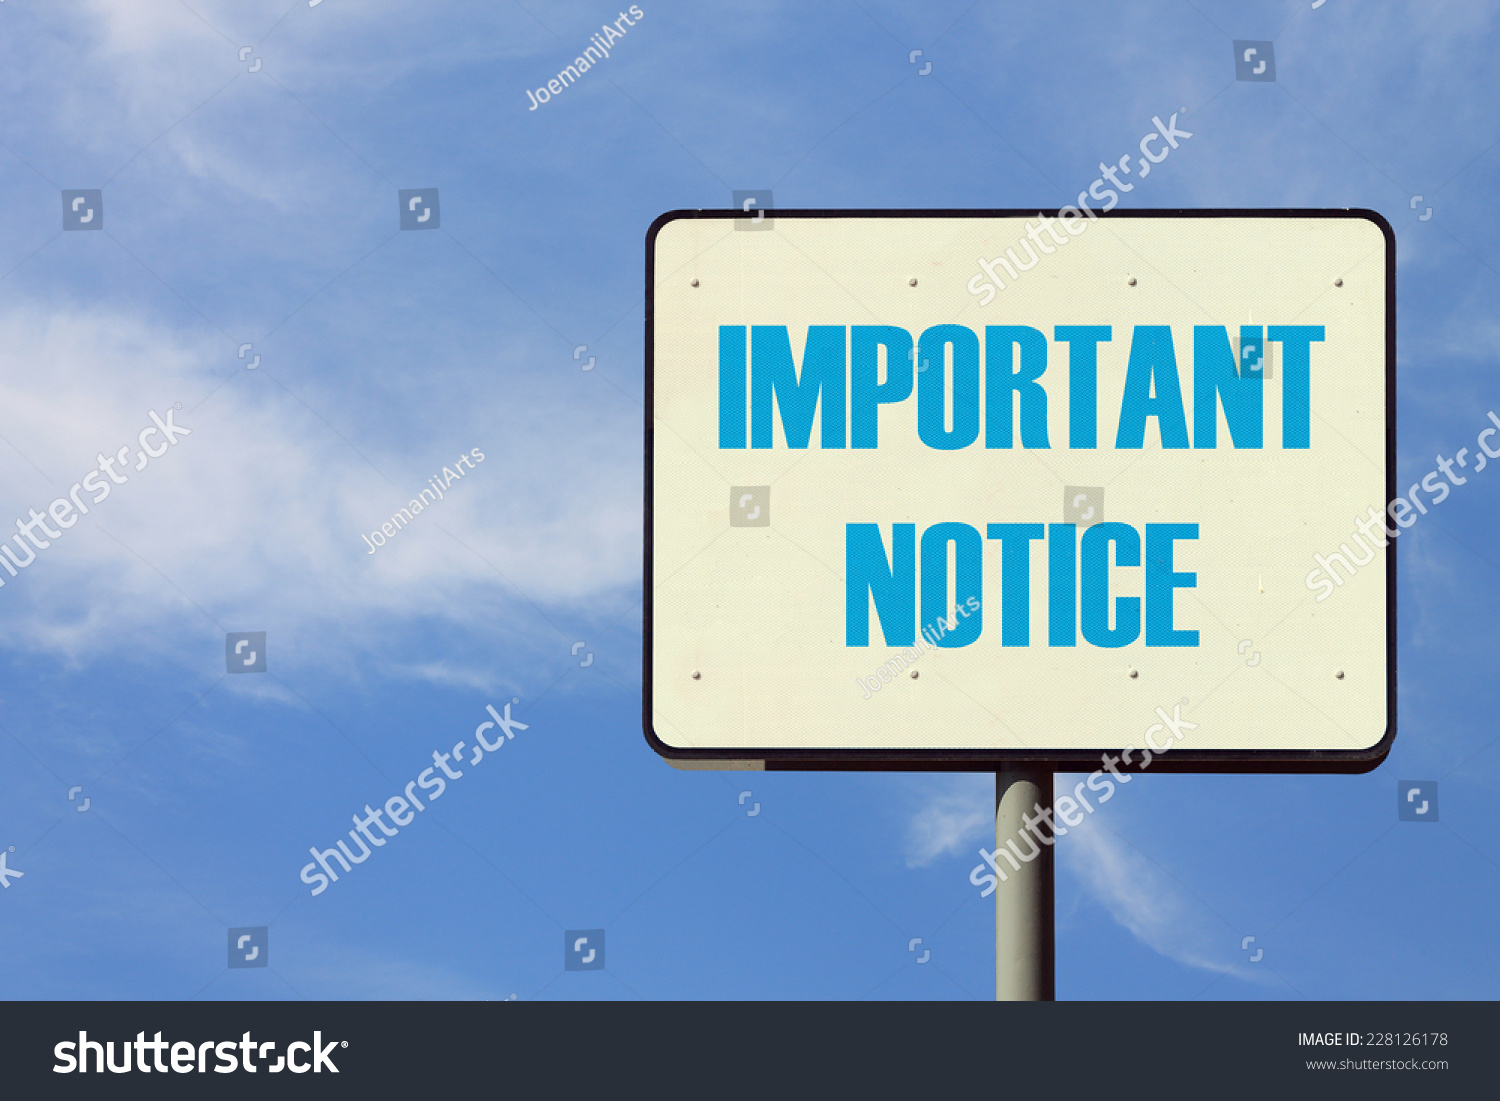 Important Notice Sign Stock Photo 228126178 : Shutterstock